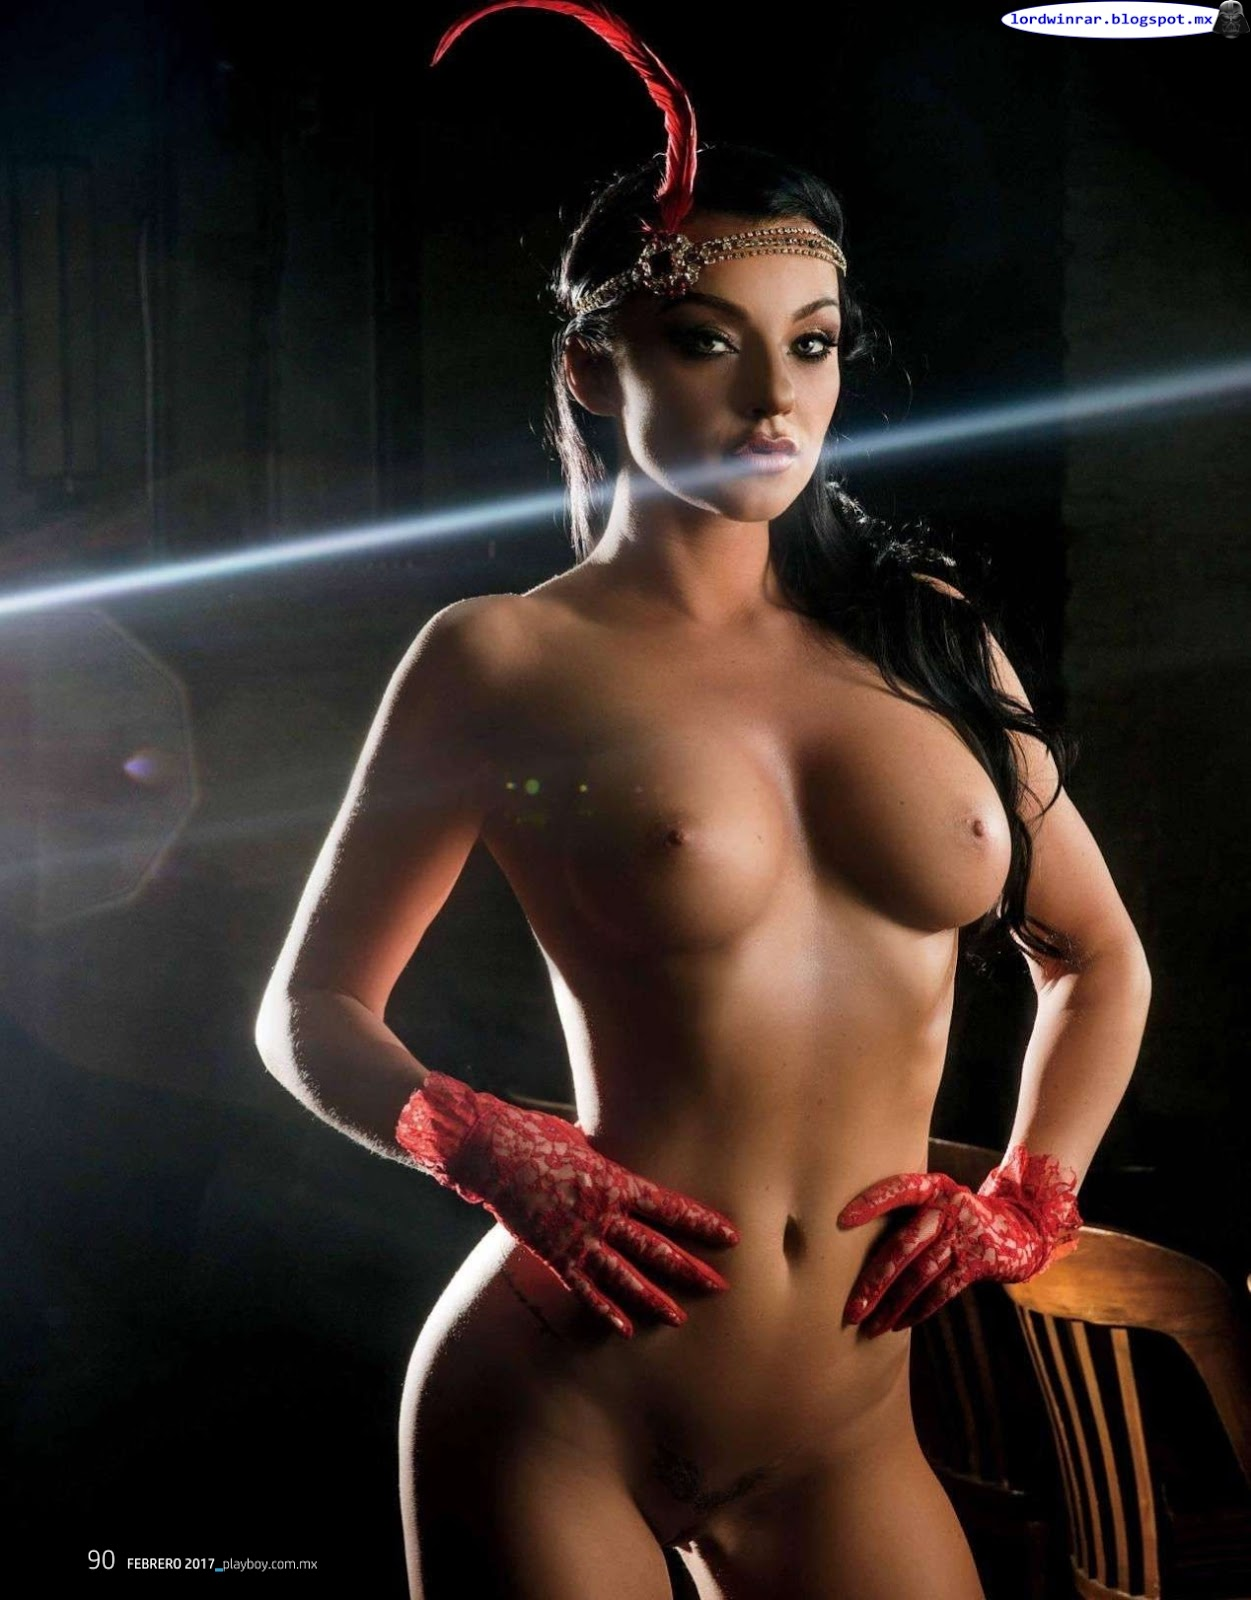 amia Miley naked wallpapers